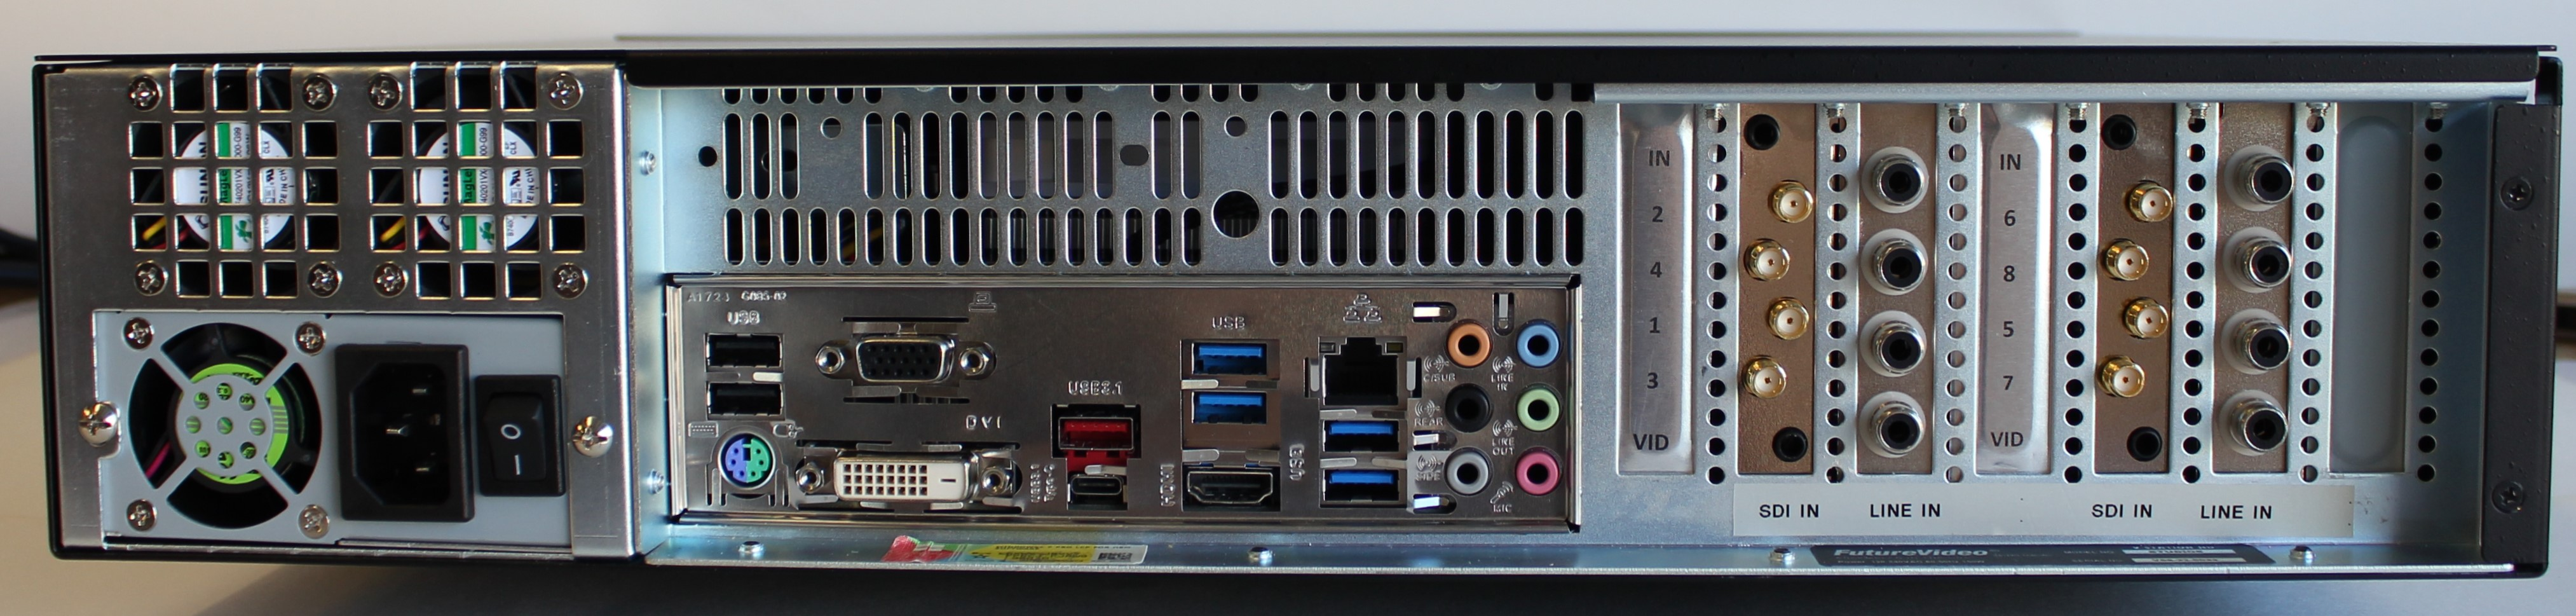 Studio4-HDMI-Rear-Panel